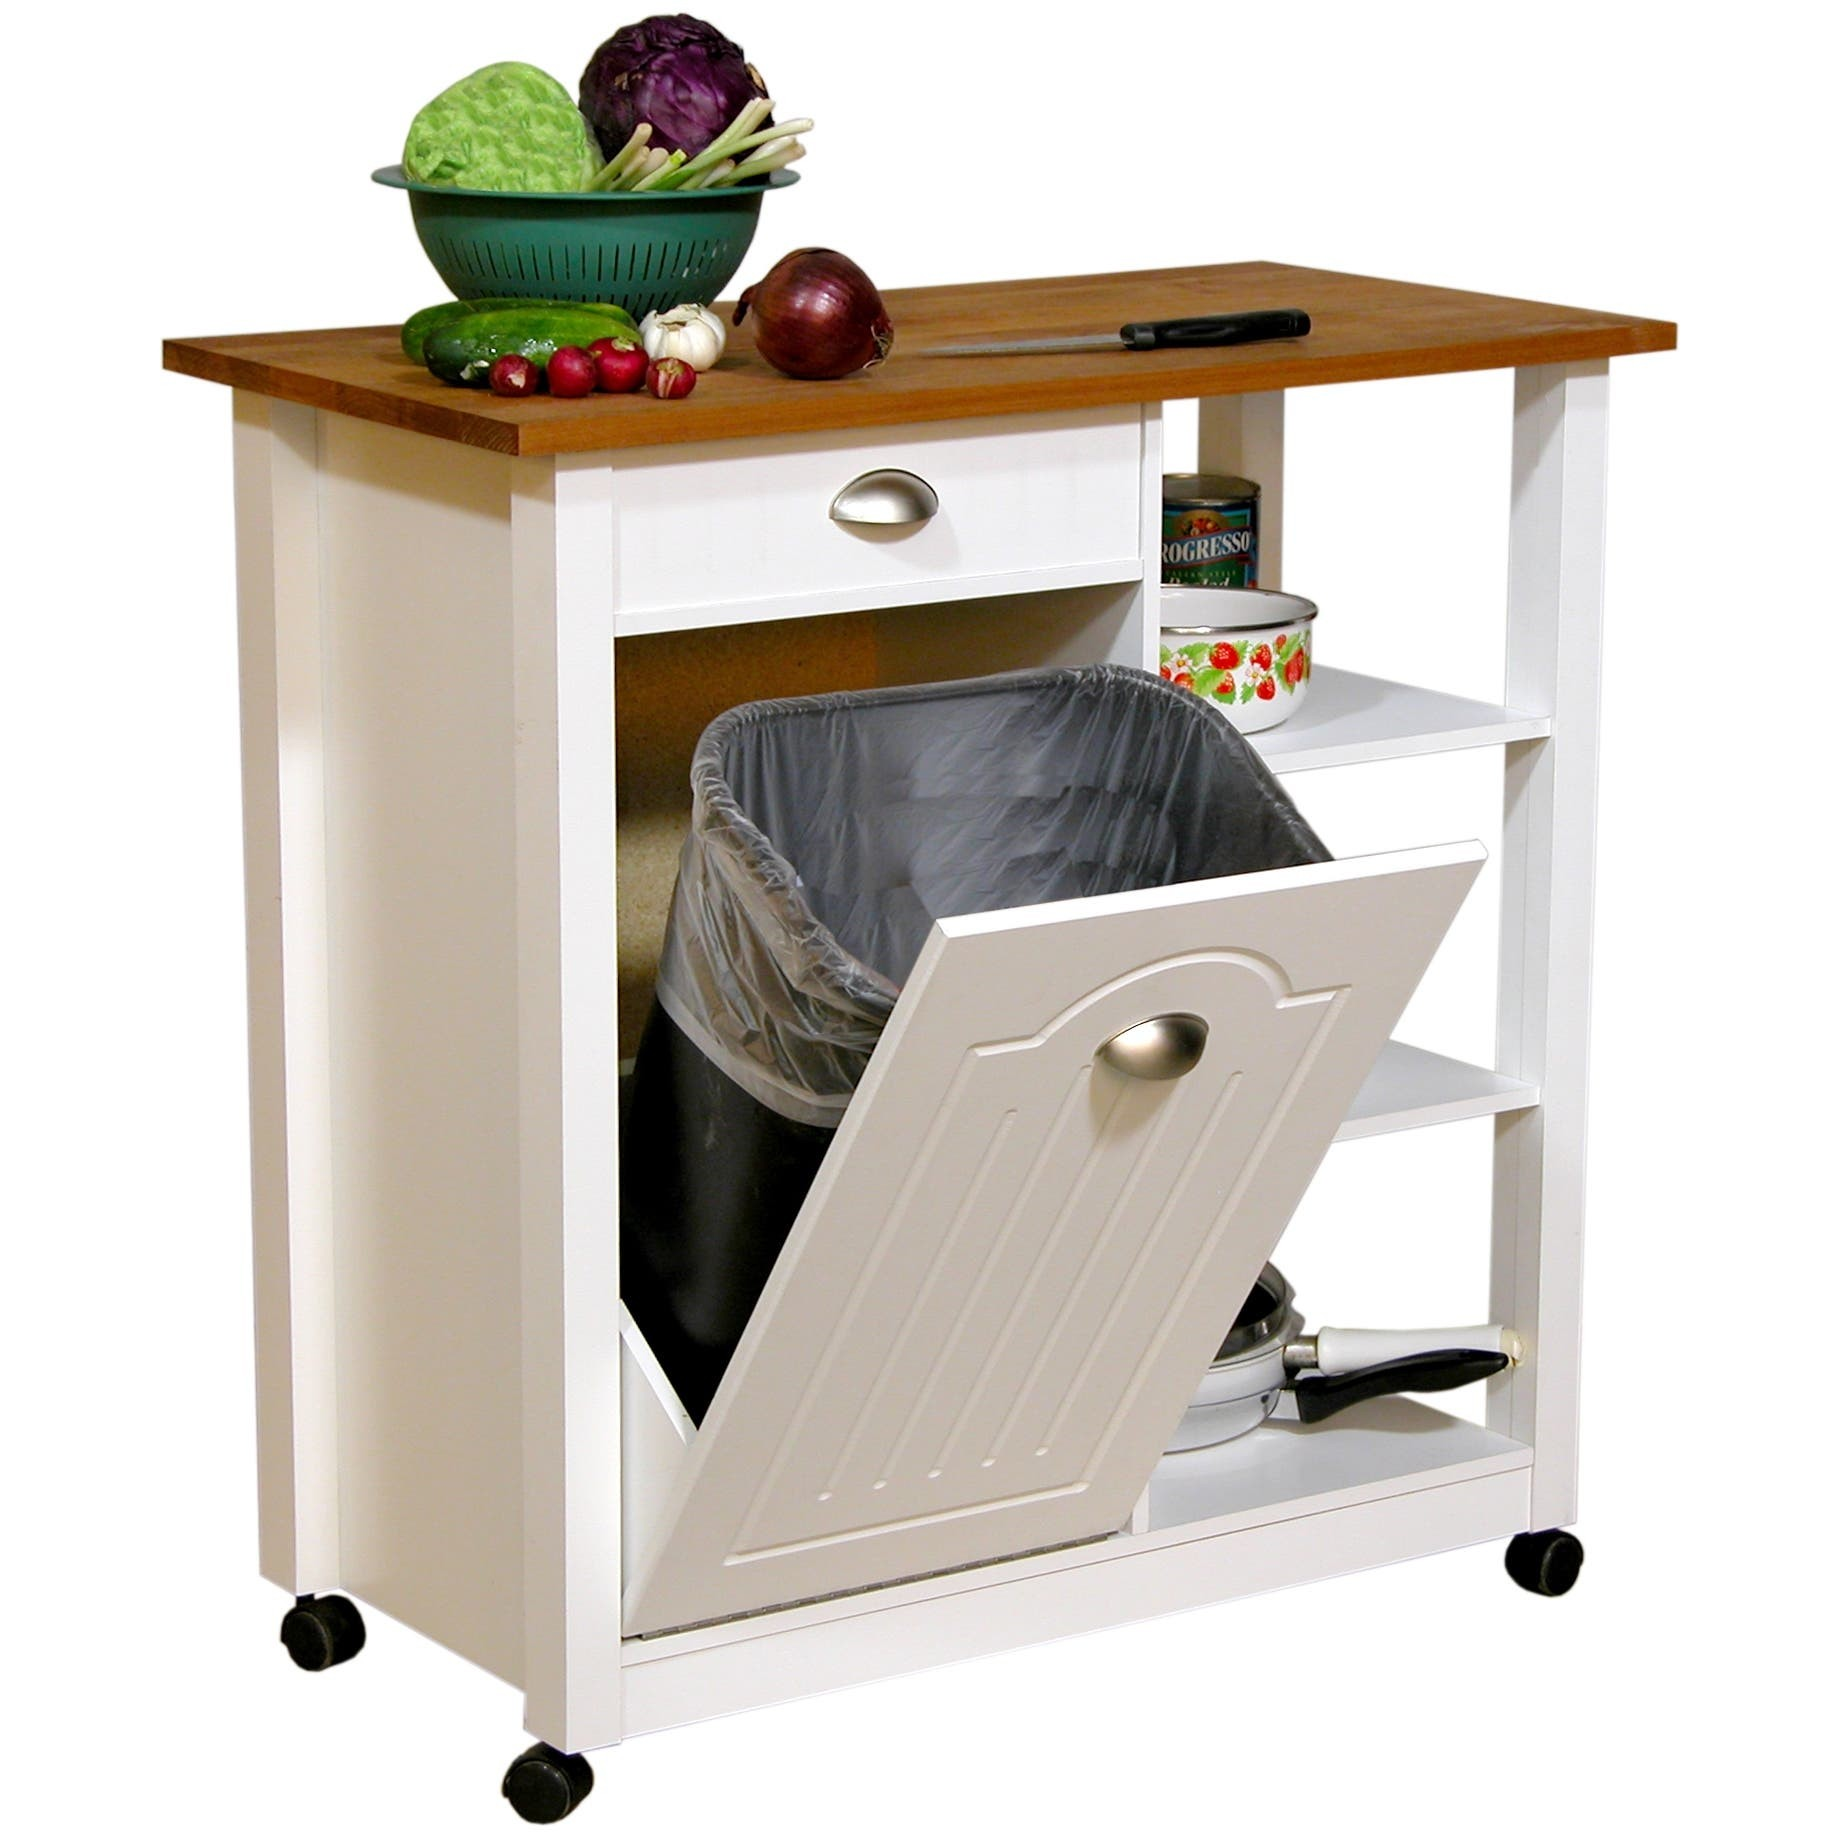 High Quality Kitchen Island With Garbage Bin   Foter